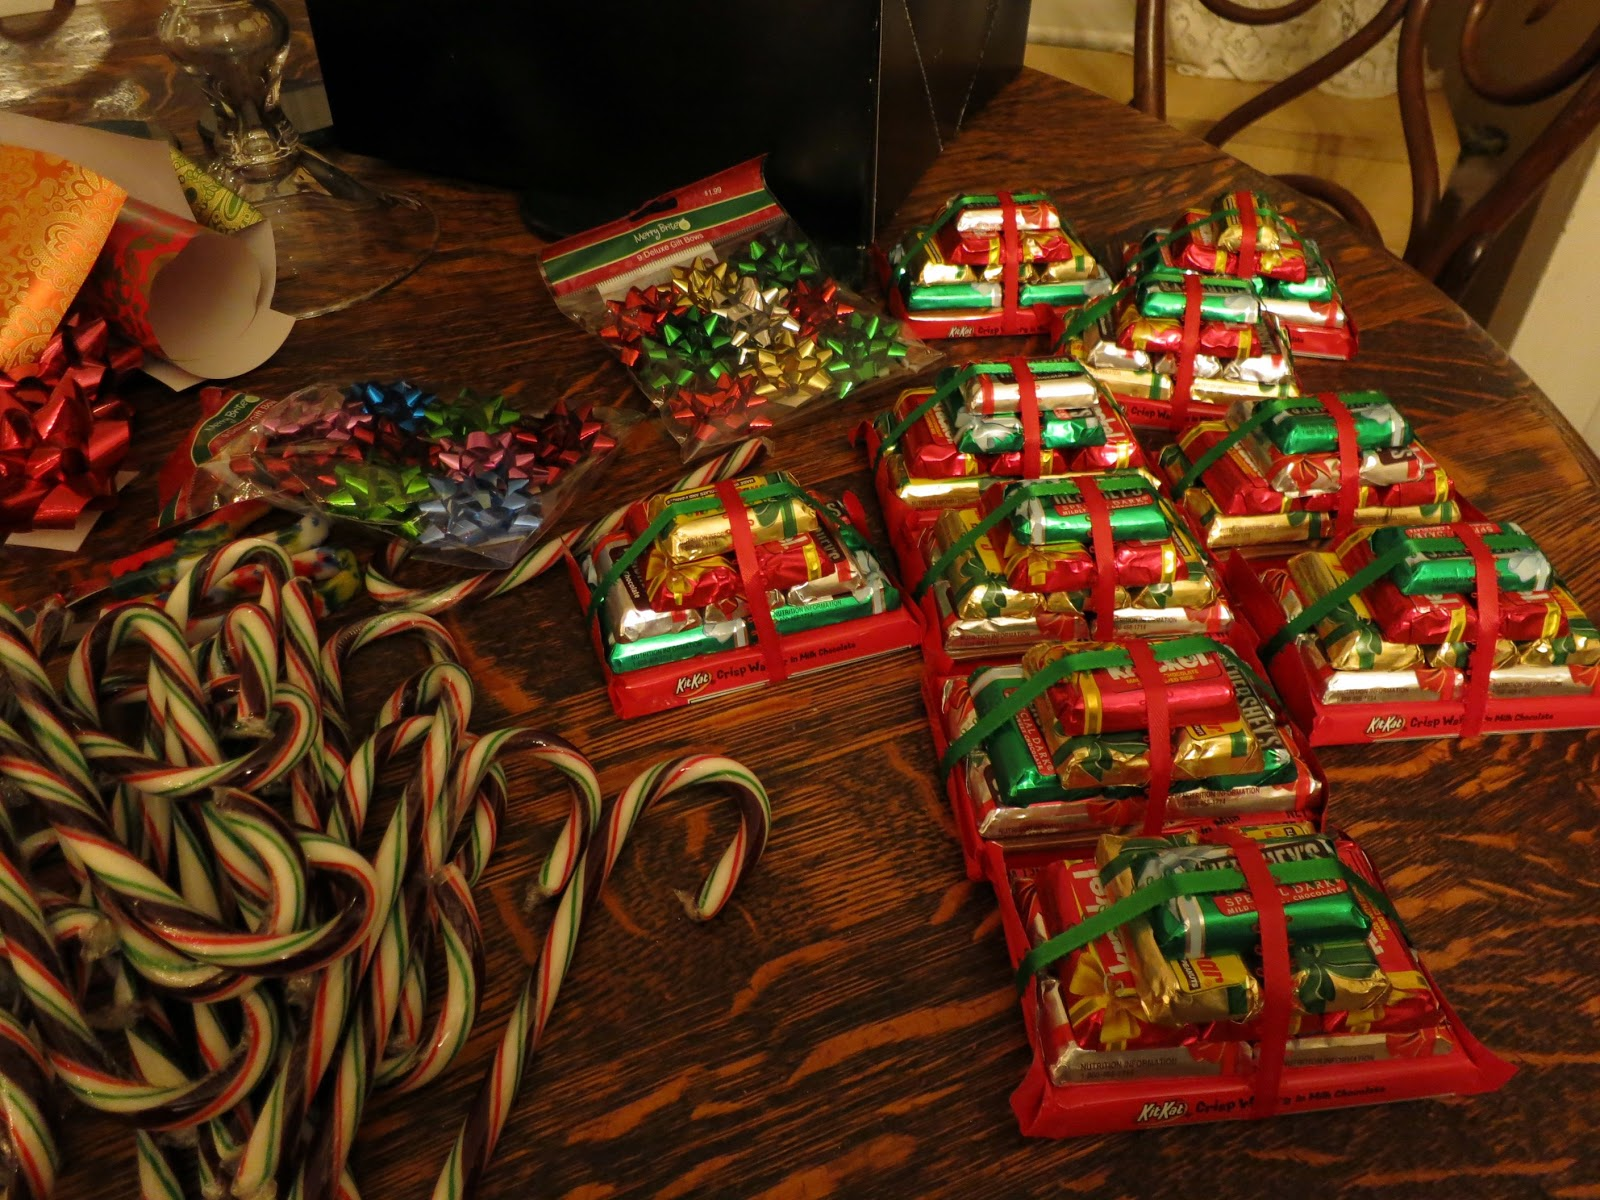 So THAT'S where all the good-looking candy canes went....